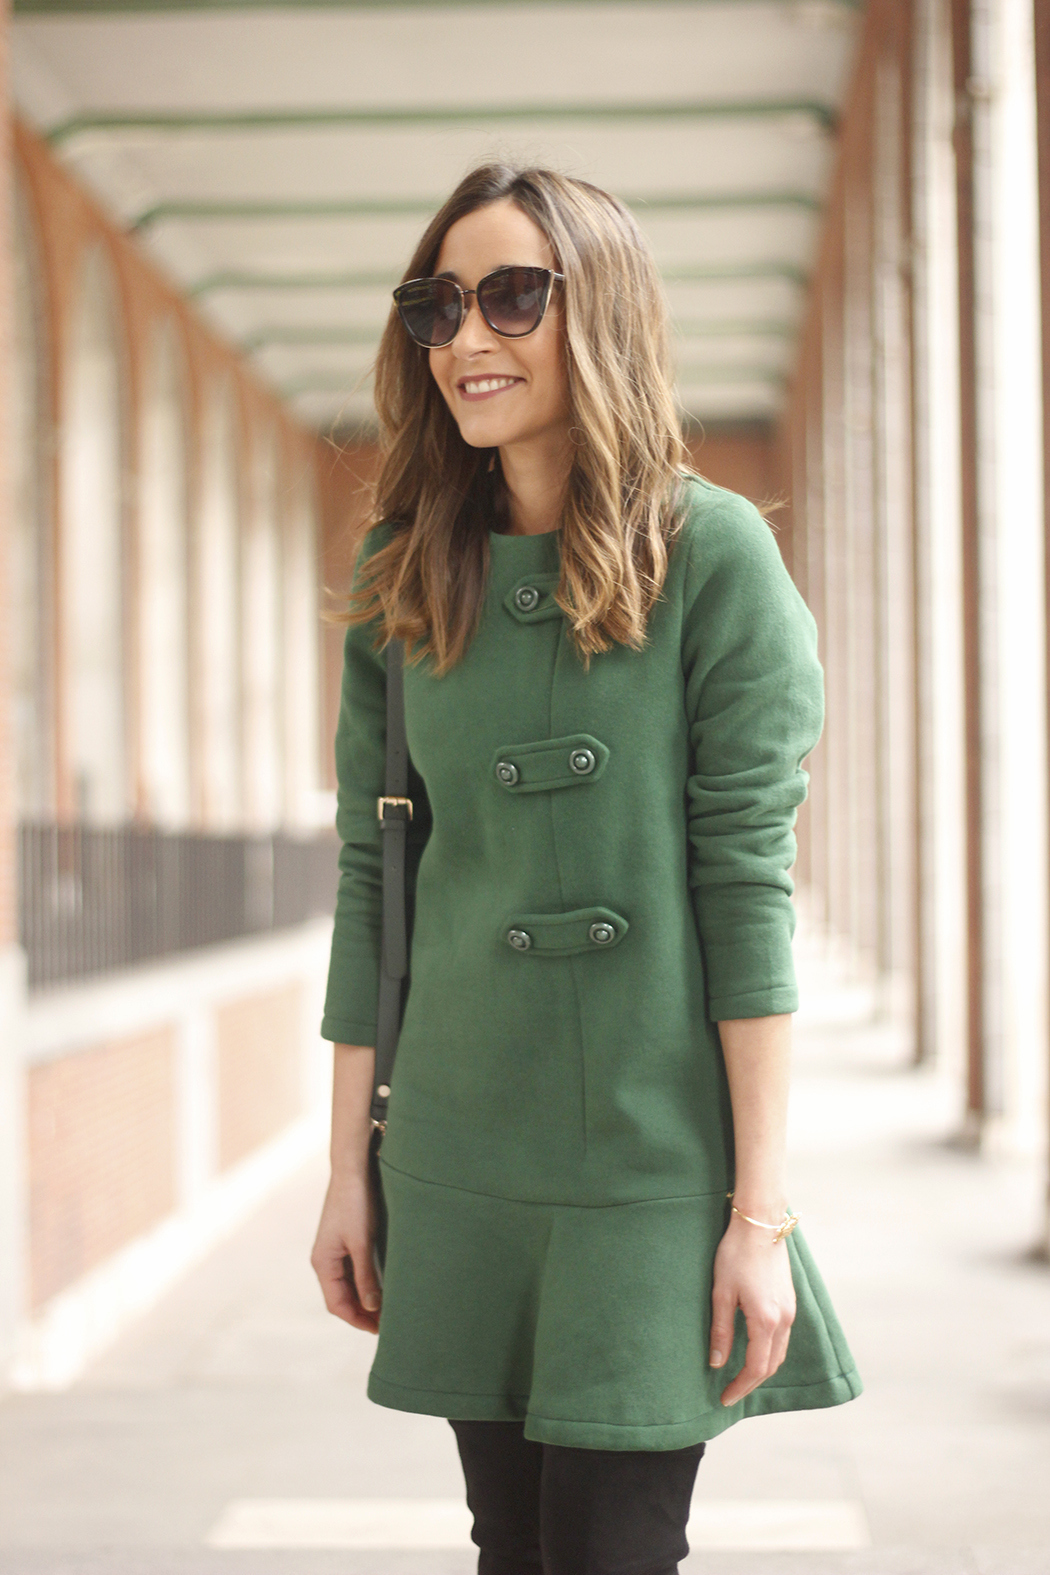 Green Dress Over the knee boots mango outfit sunnies accessories bag15